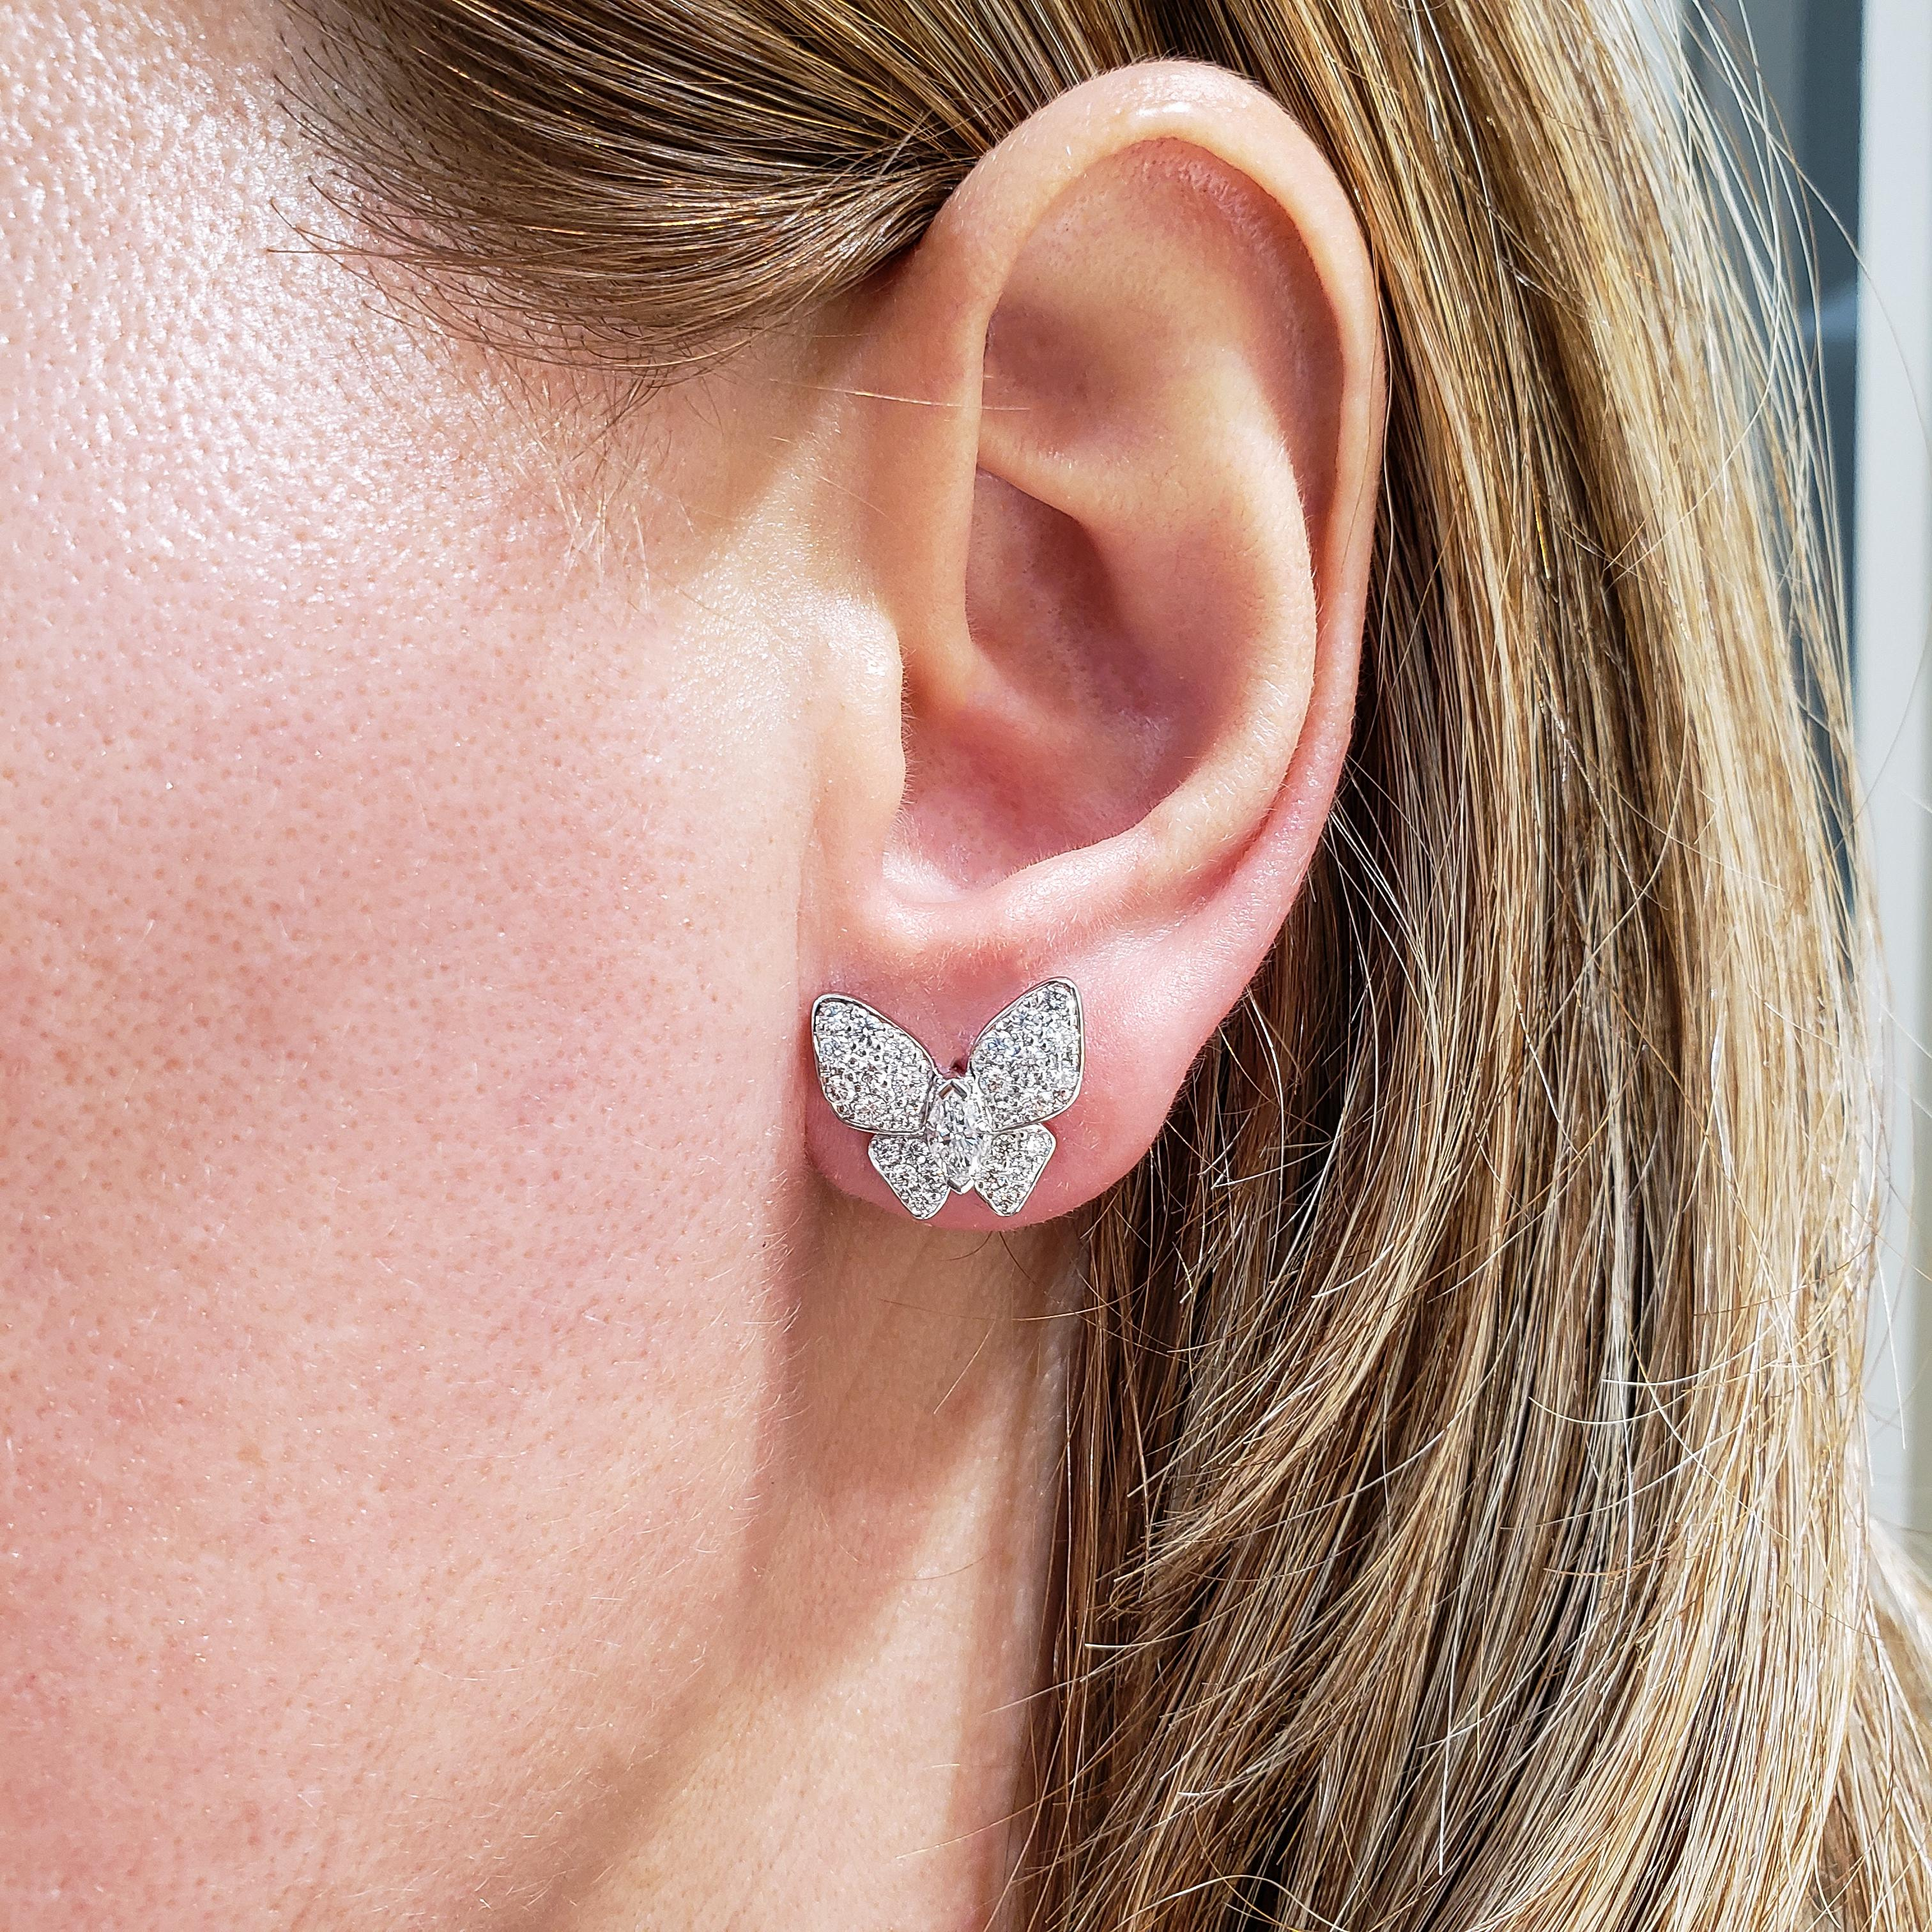 1.49 Carat Diamond Stud Earrings The